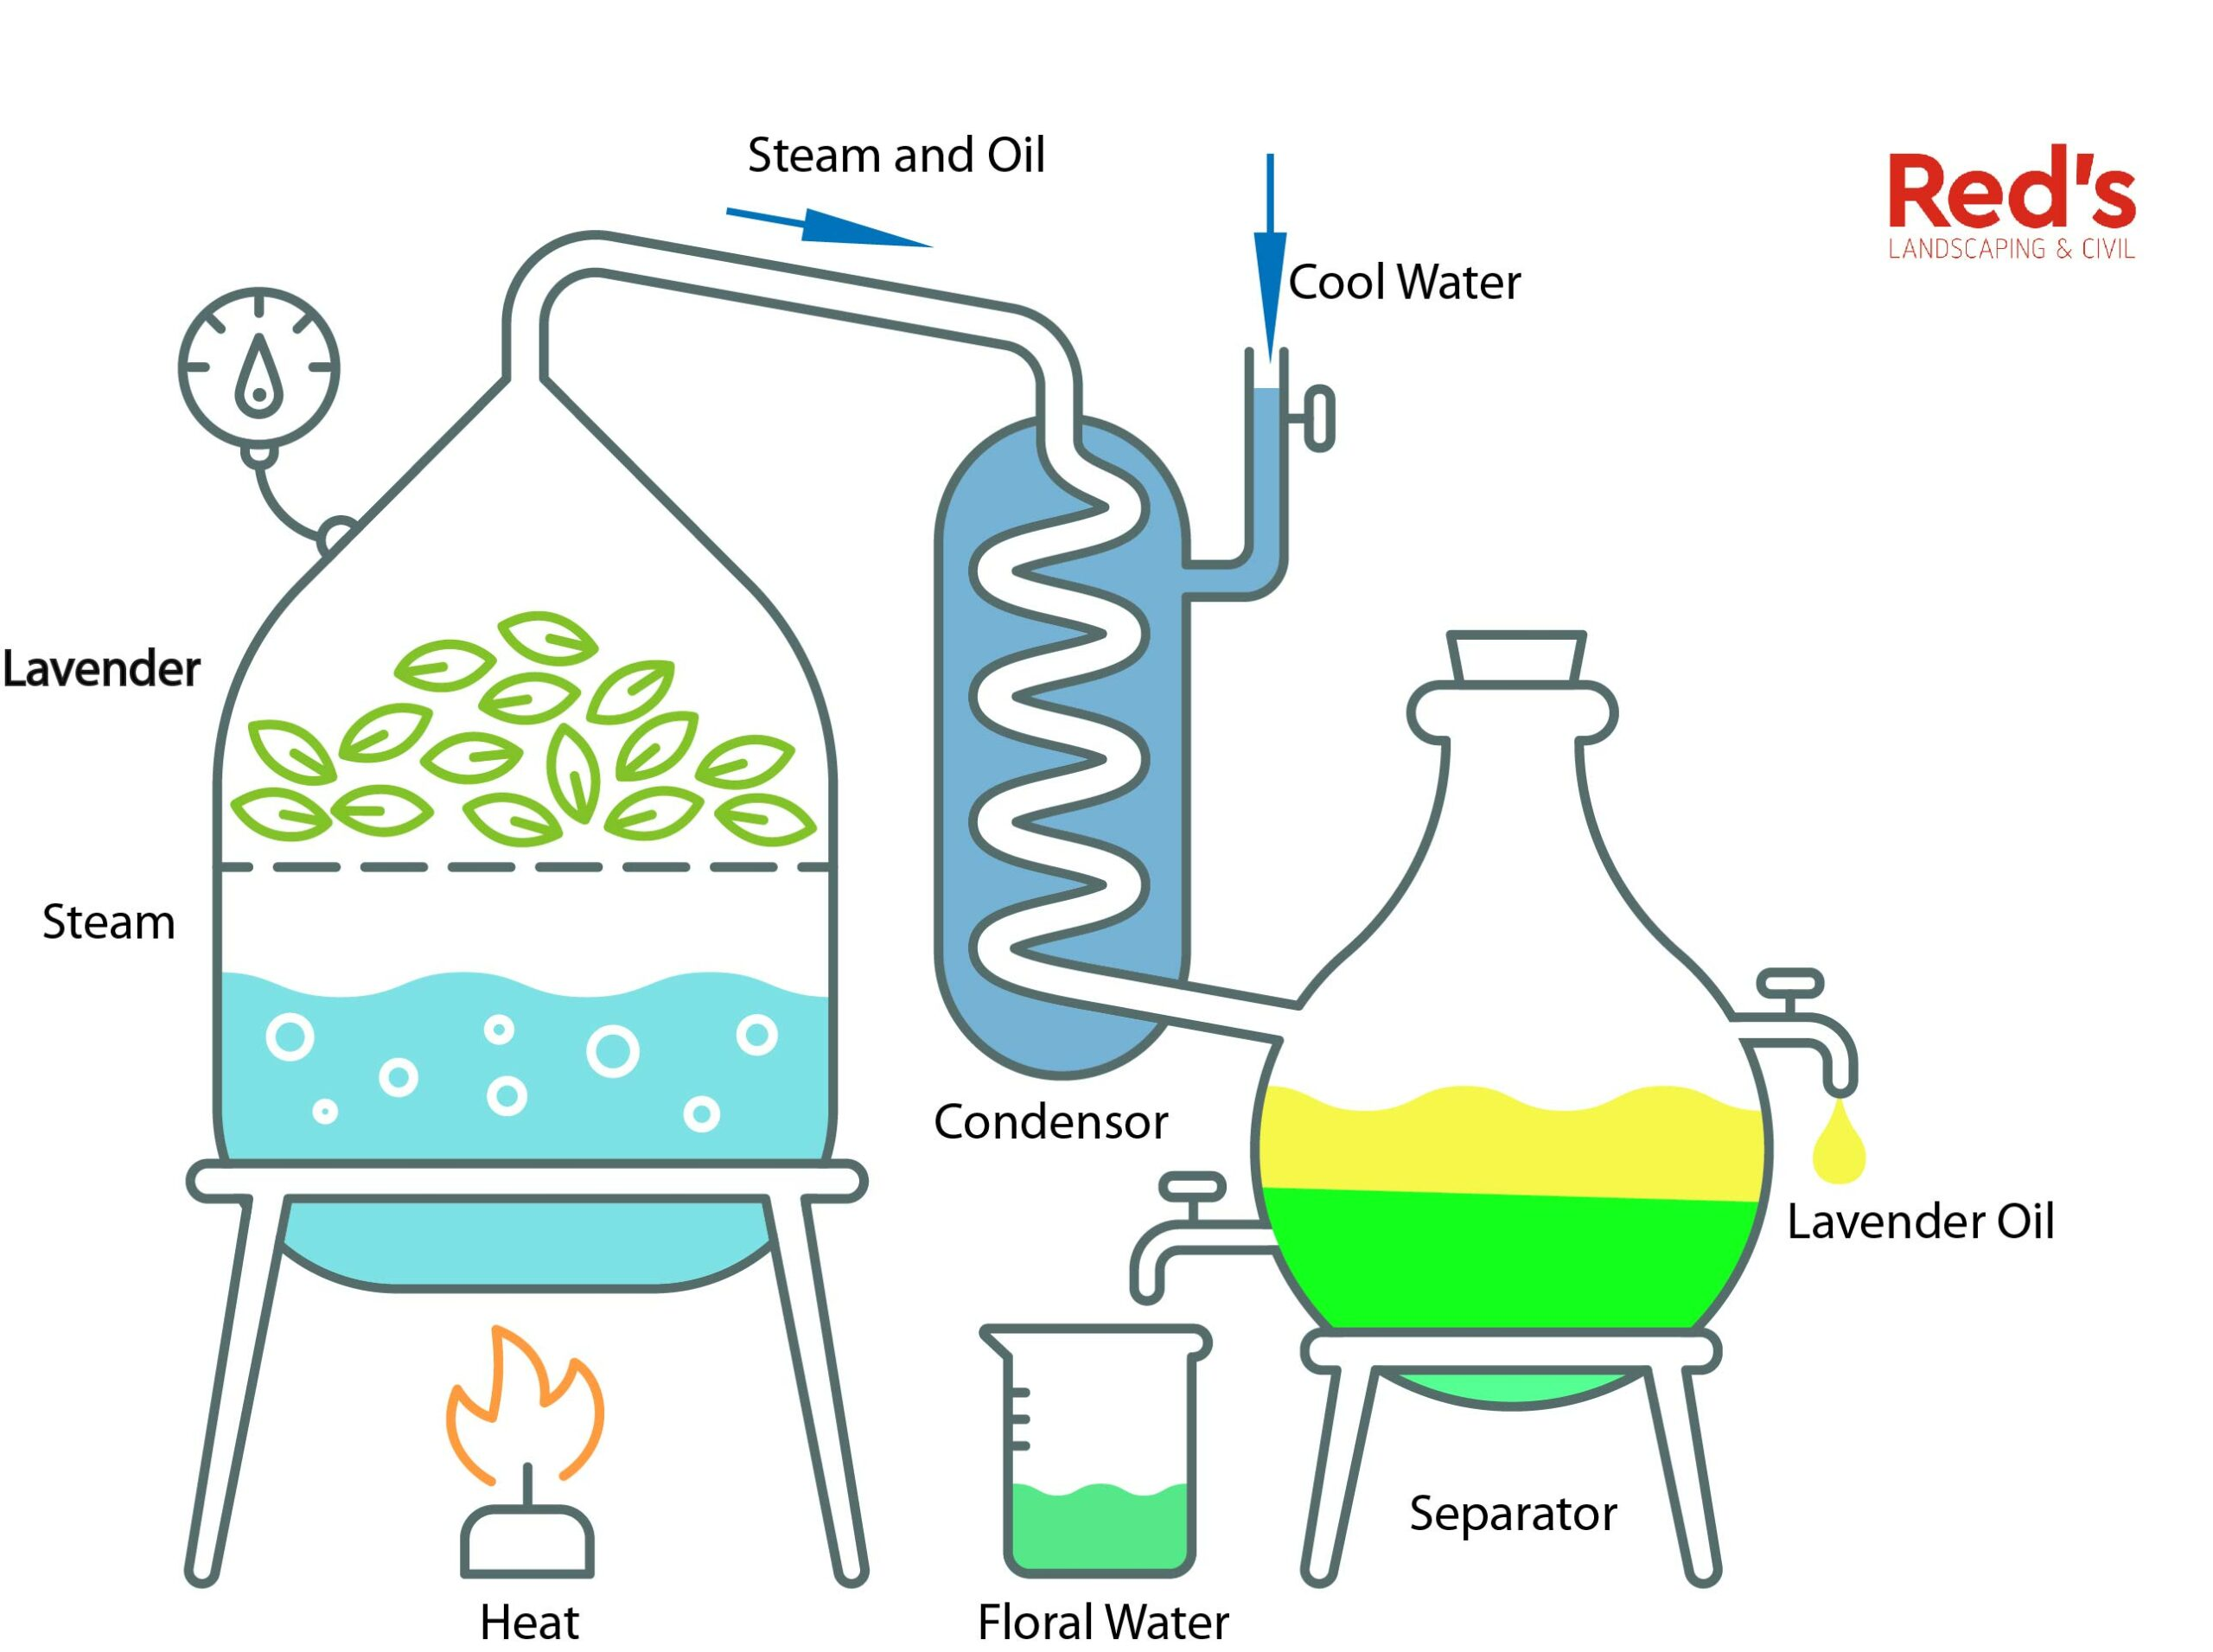 Lavender essential oil distillation process schematic